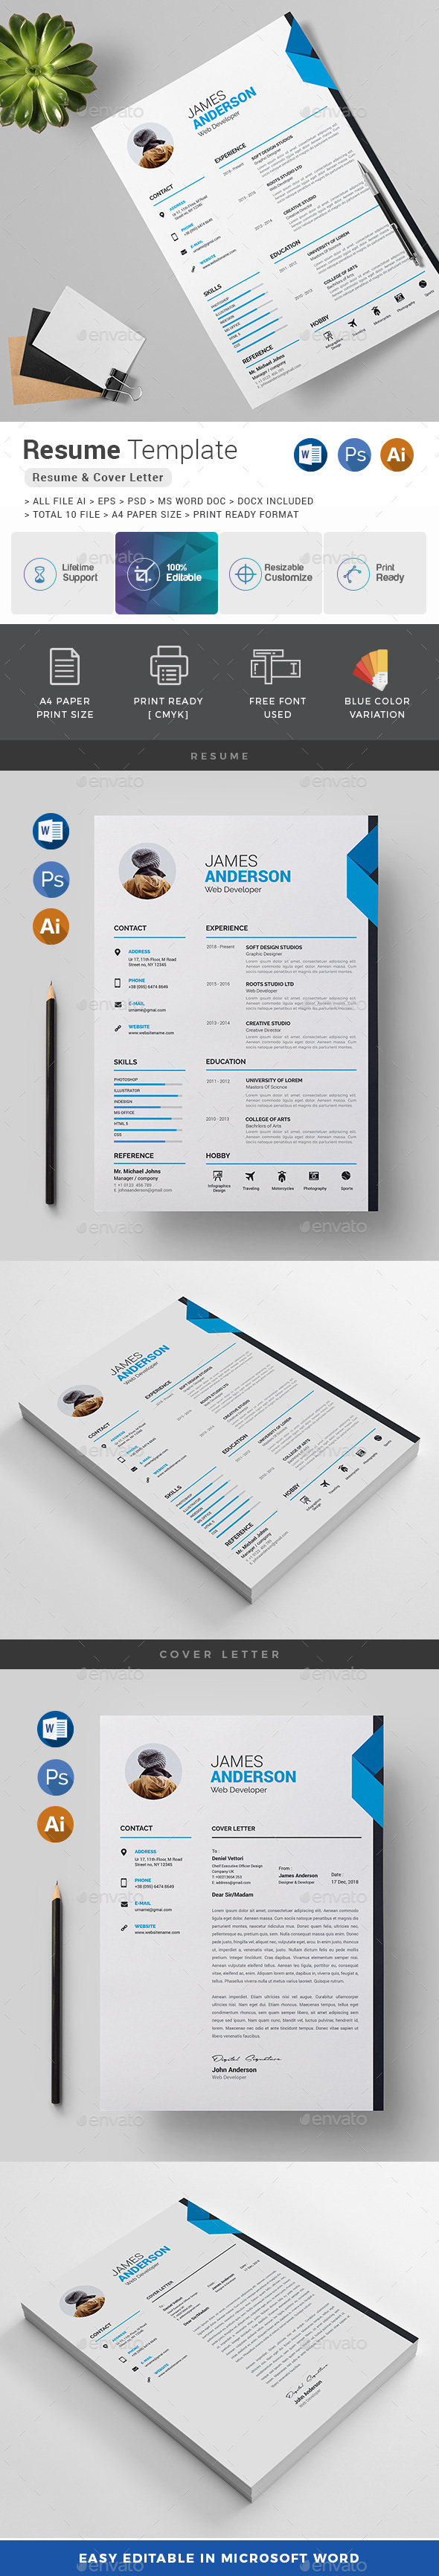 resume cover letter stationery print templates - Resume Cover